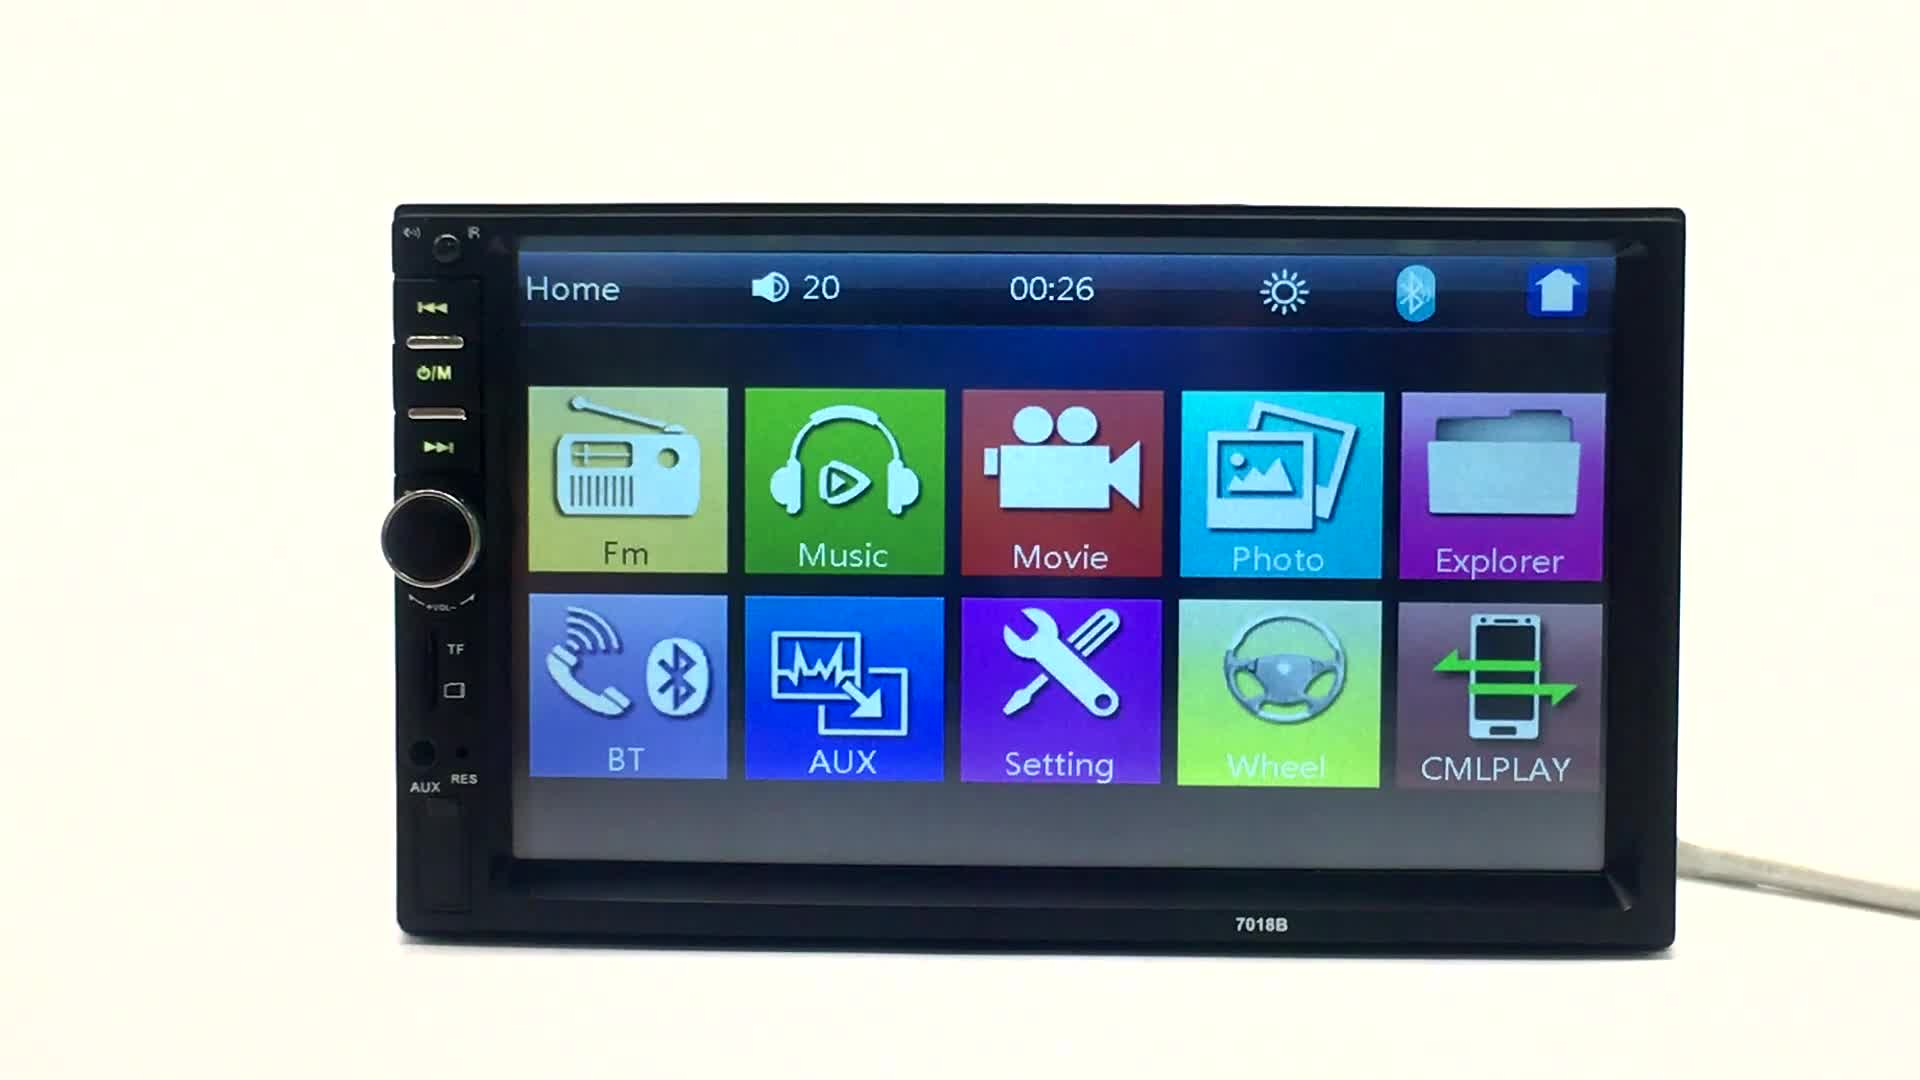 Universale 7 pollici touch screen manuale utente auto mp5 player doppio din MP5 auto lettore dvd con bluetooth car radio 7018b commercio all'ingrosso